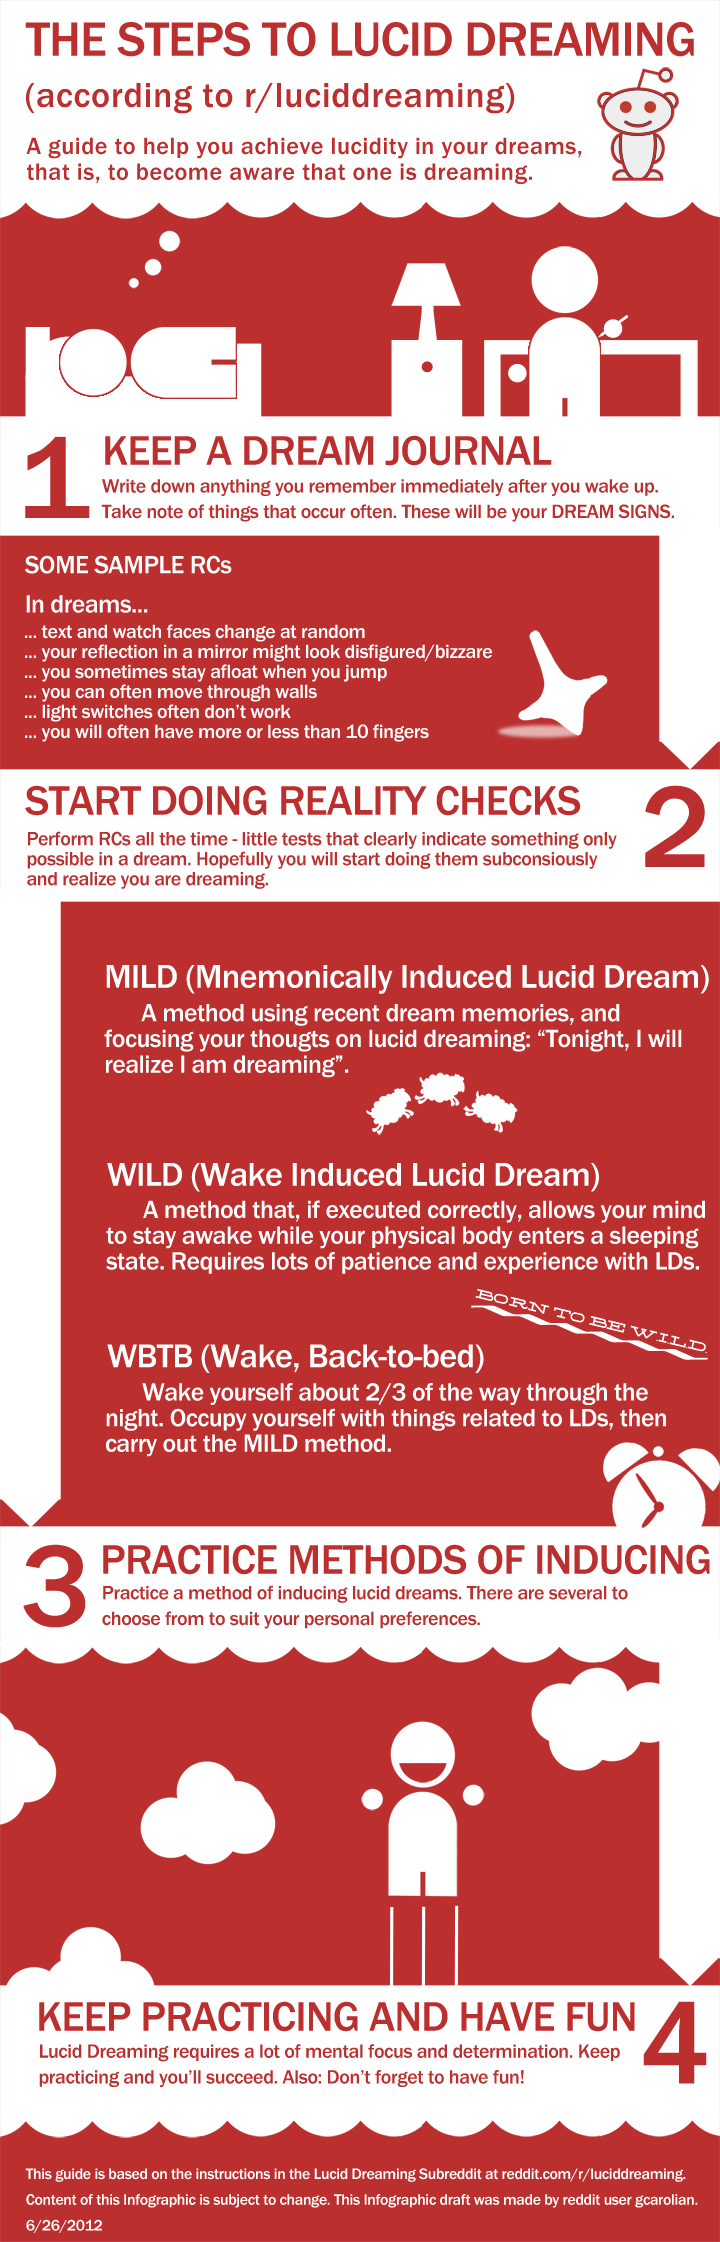 how to make lucid dreams